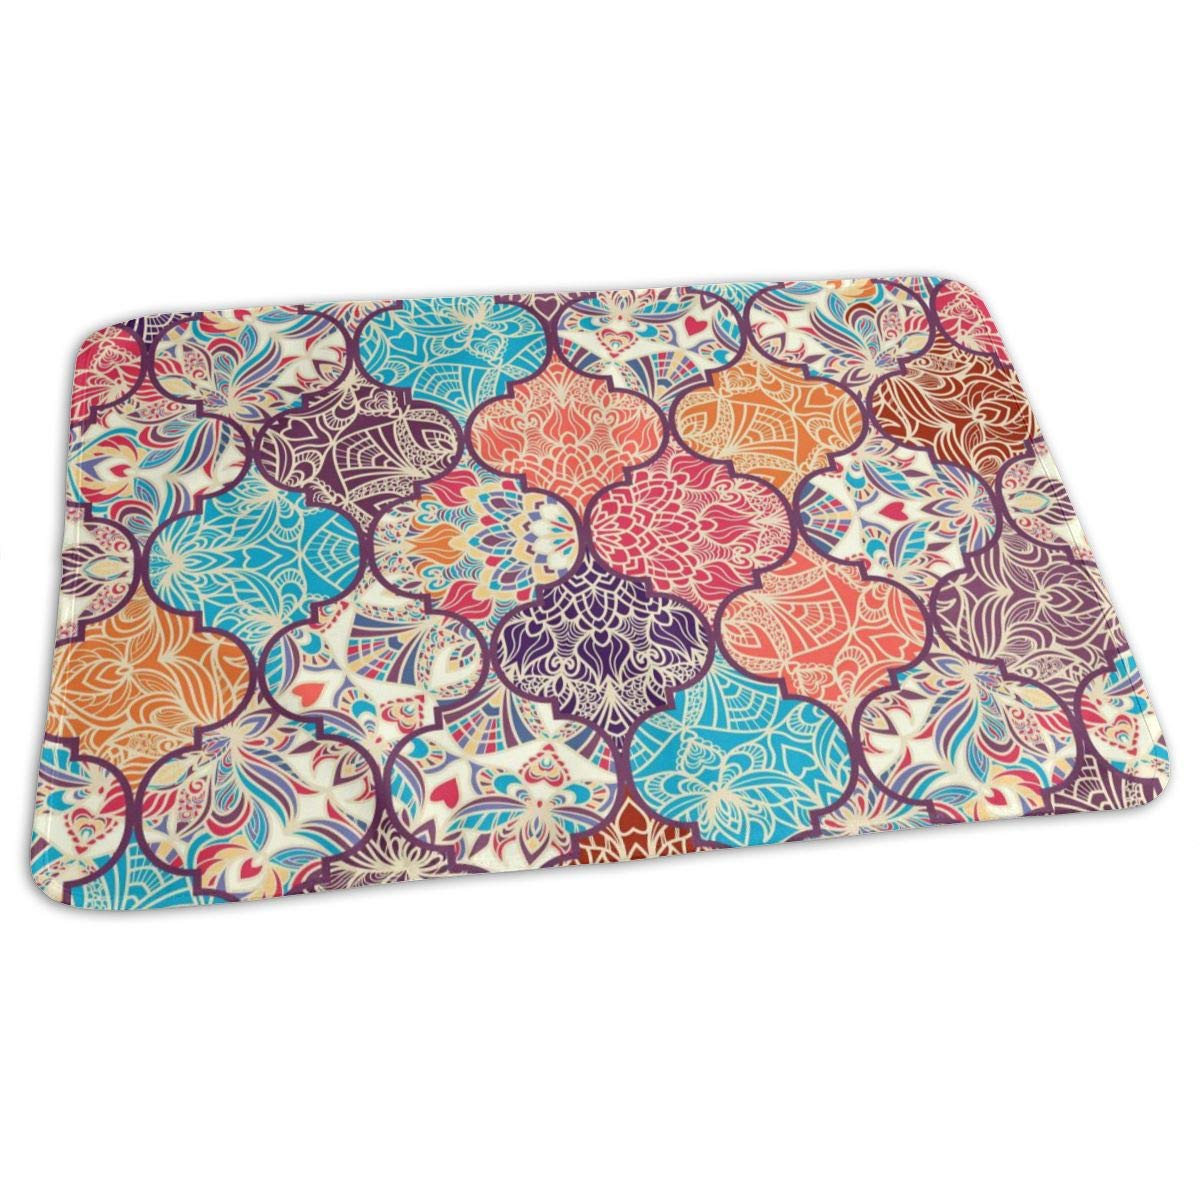 Osvbs Lovely Baby Reusable Waterproof Portable Colour Mosaic Turkish Style Ottoman Patterns Changing Pad Home Travel 27.5''x19.7'' by Osvbs